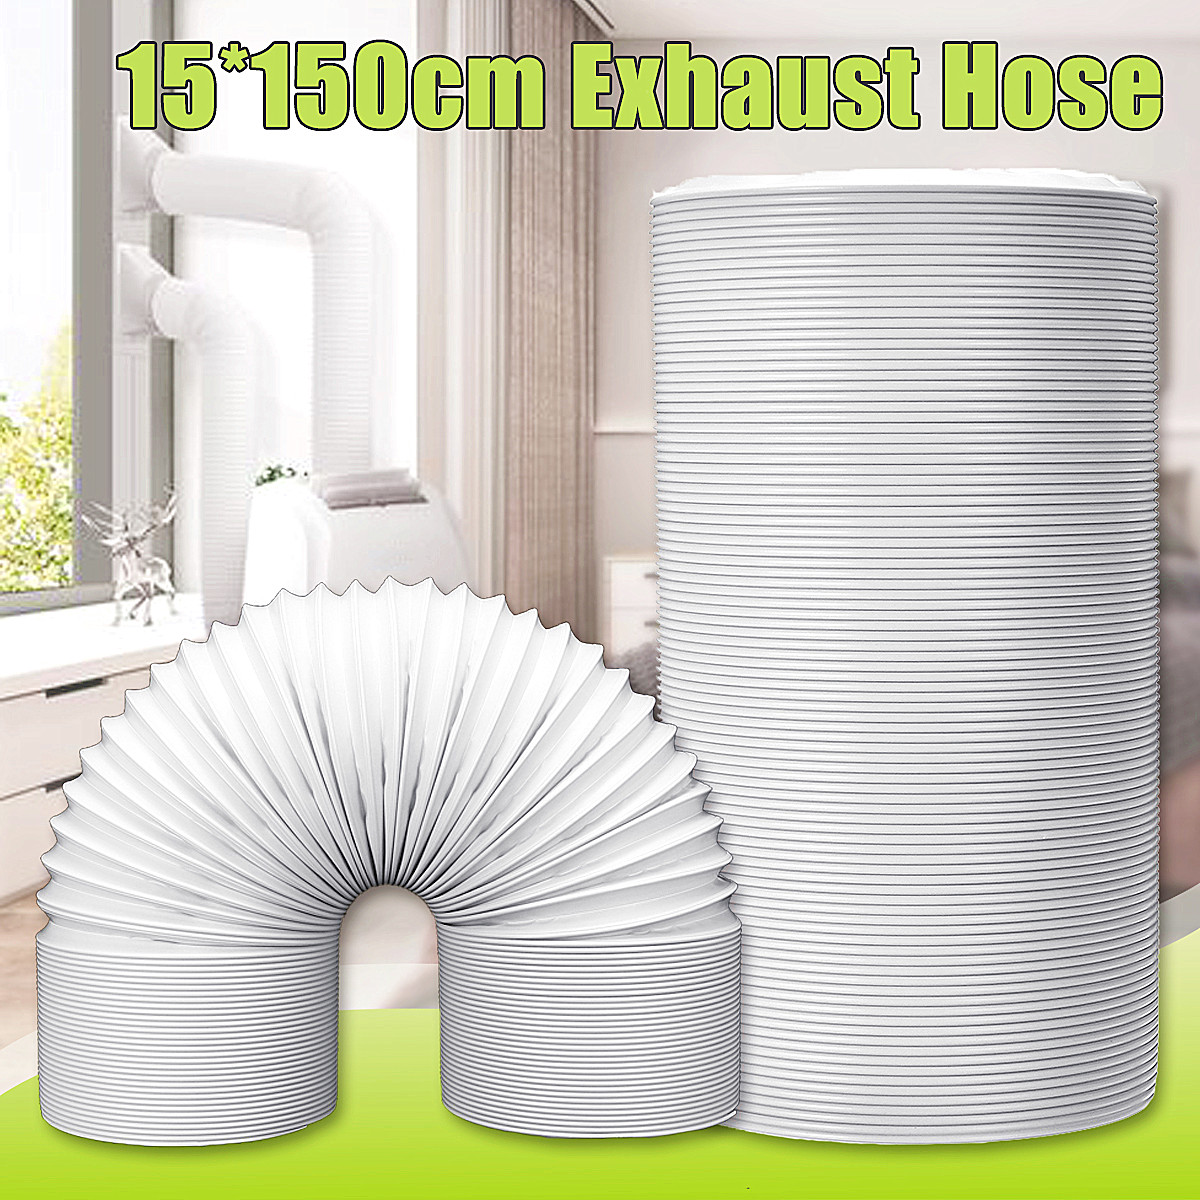 Kanon 1.5M Exhaust Hose Vent Tube Ventilation Pipe Steel Wire Air OX-25